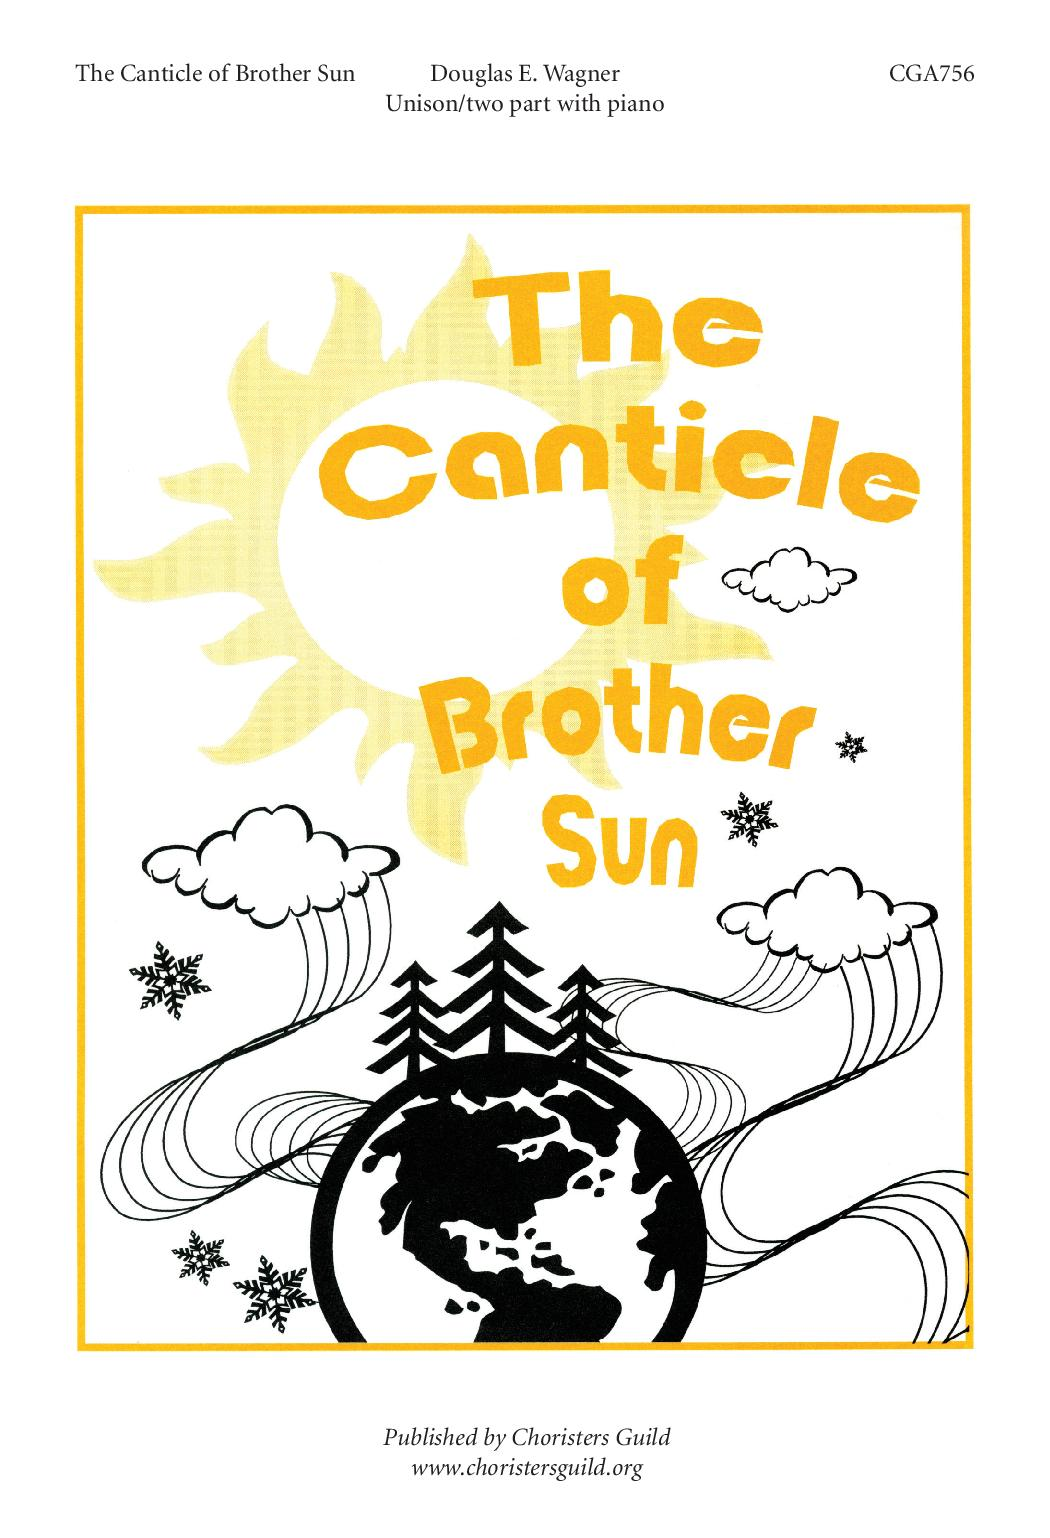 The Canticle of Brother Sun